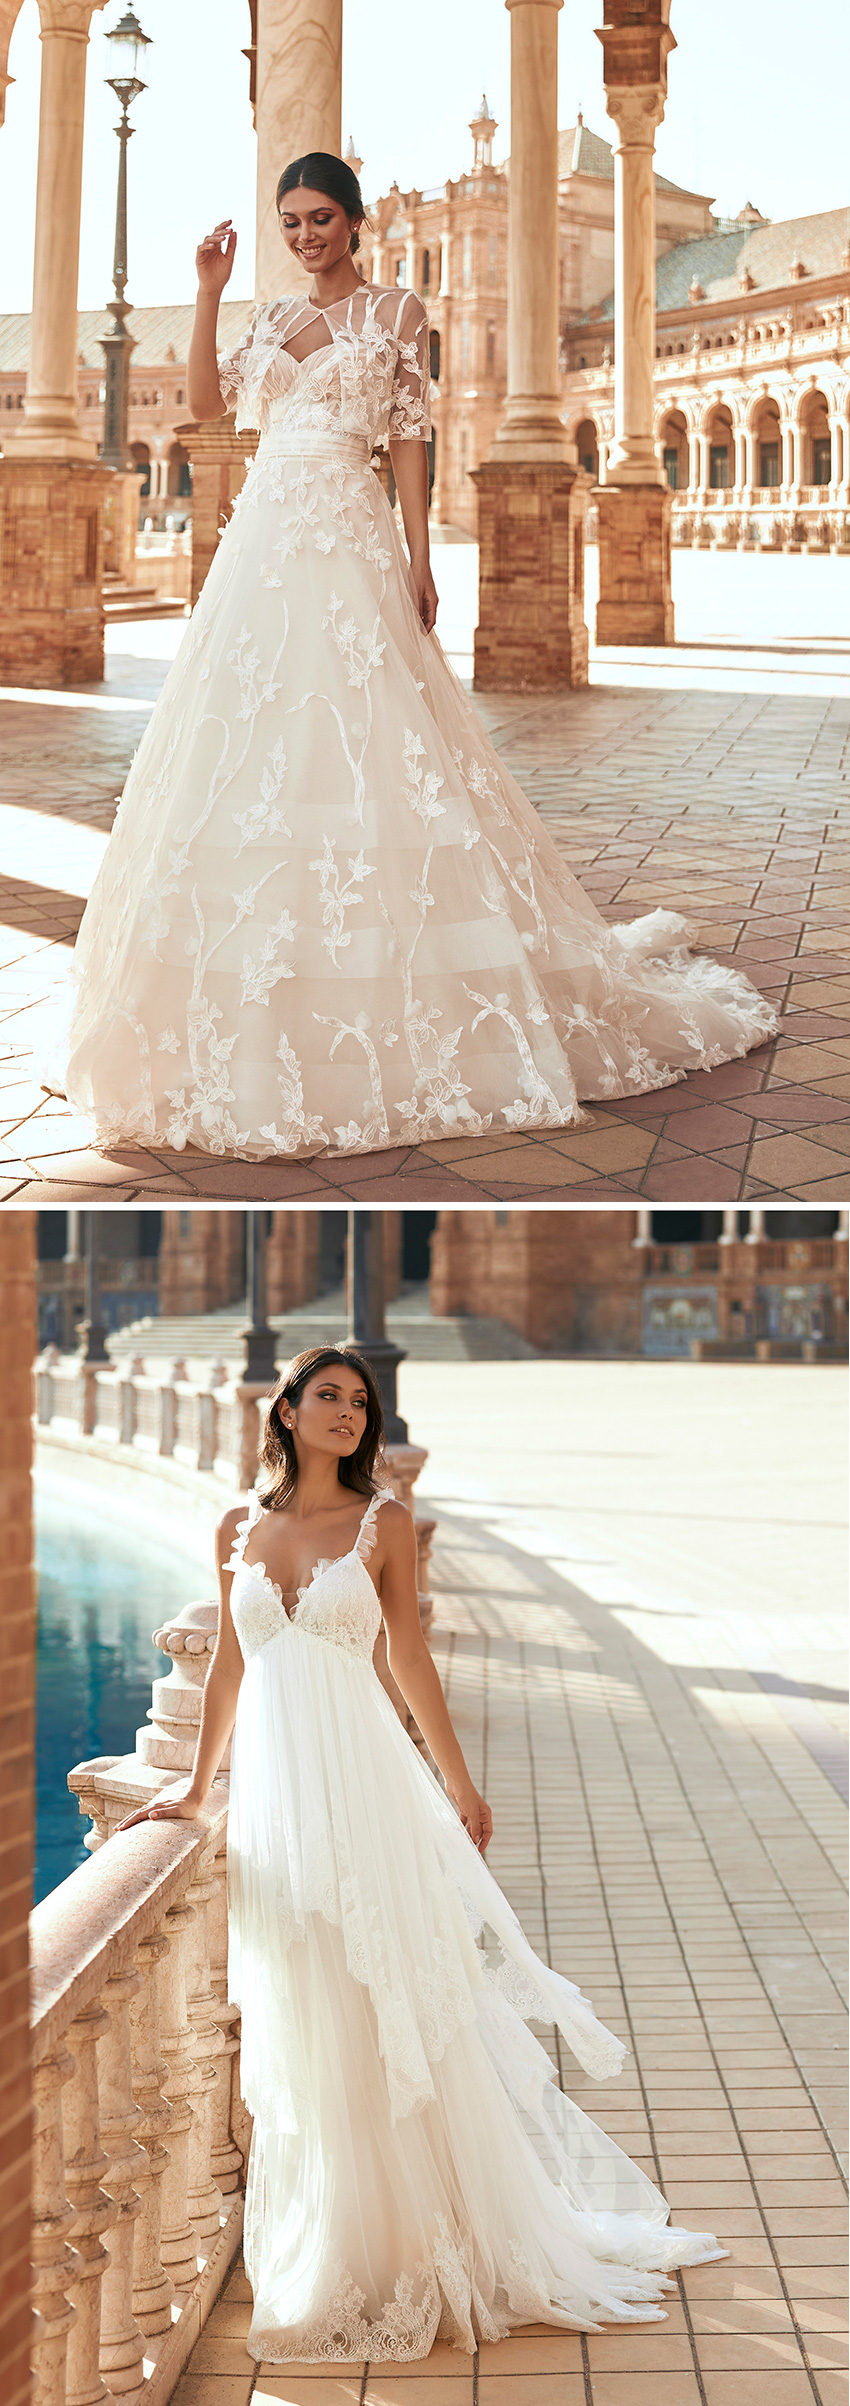 Marchesa for Pronovias new bridal collection inspired in the beauty of Spain's city Seville